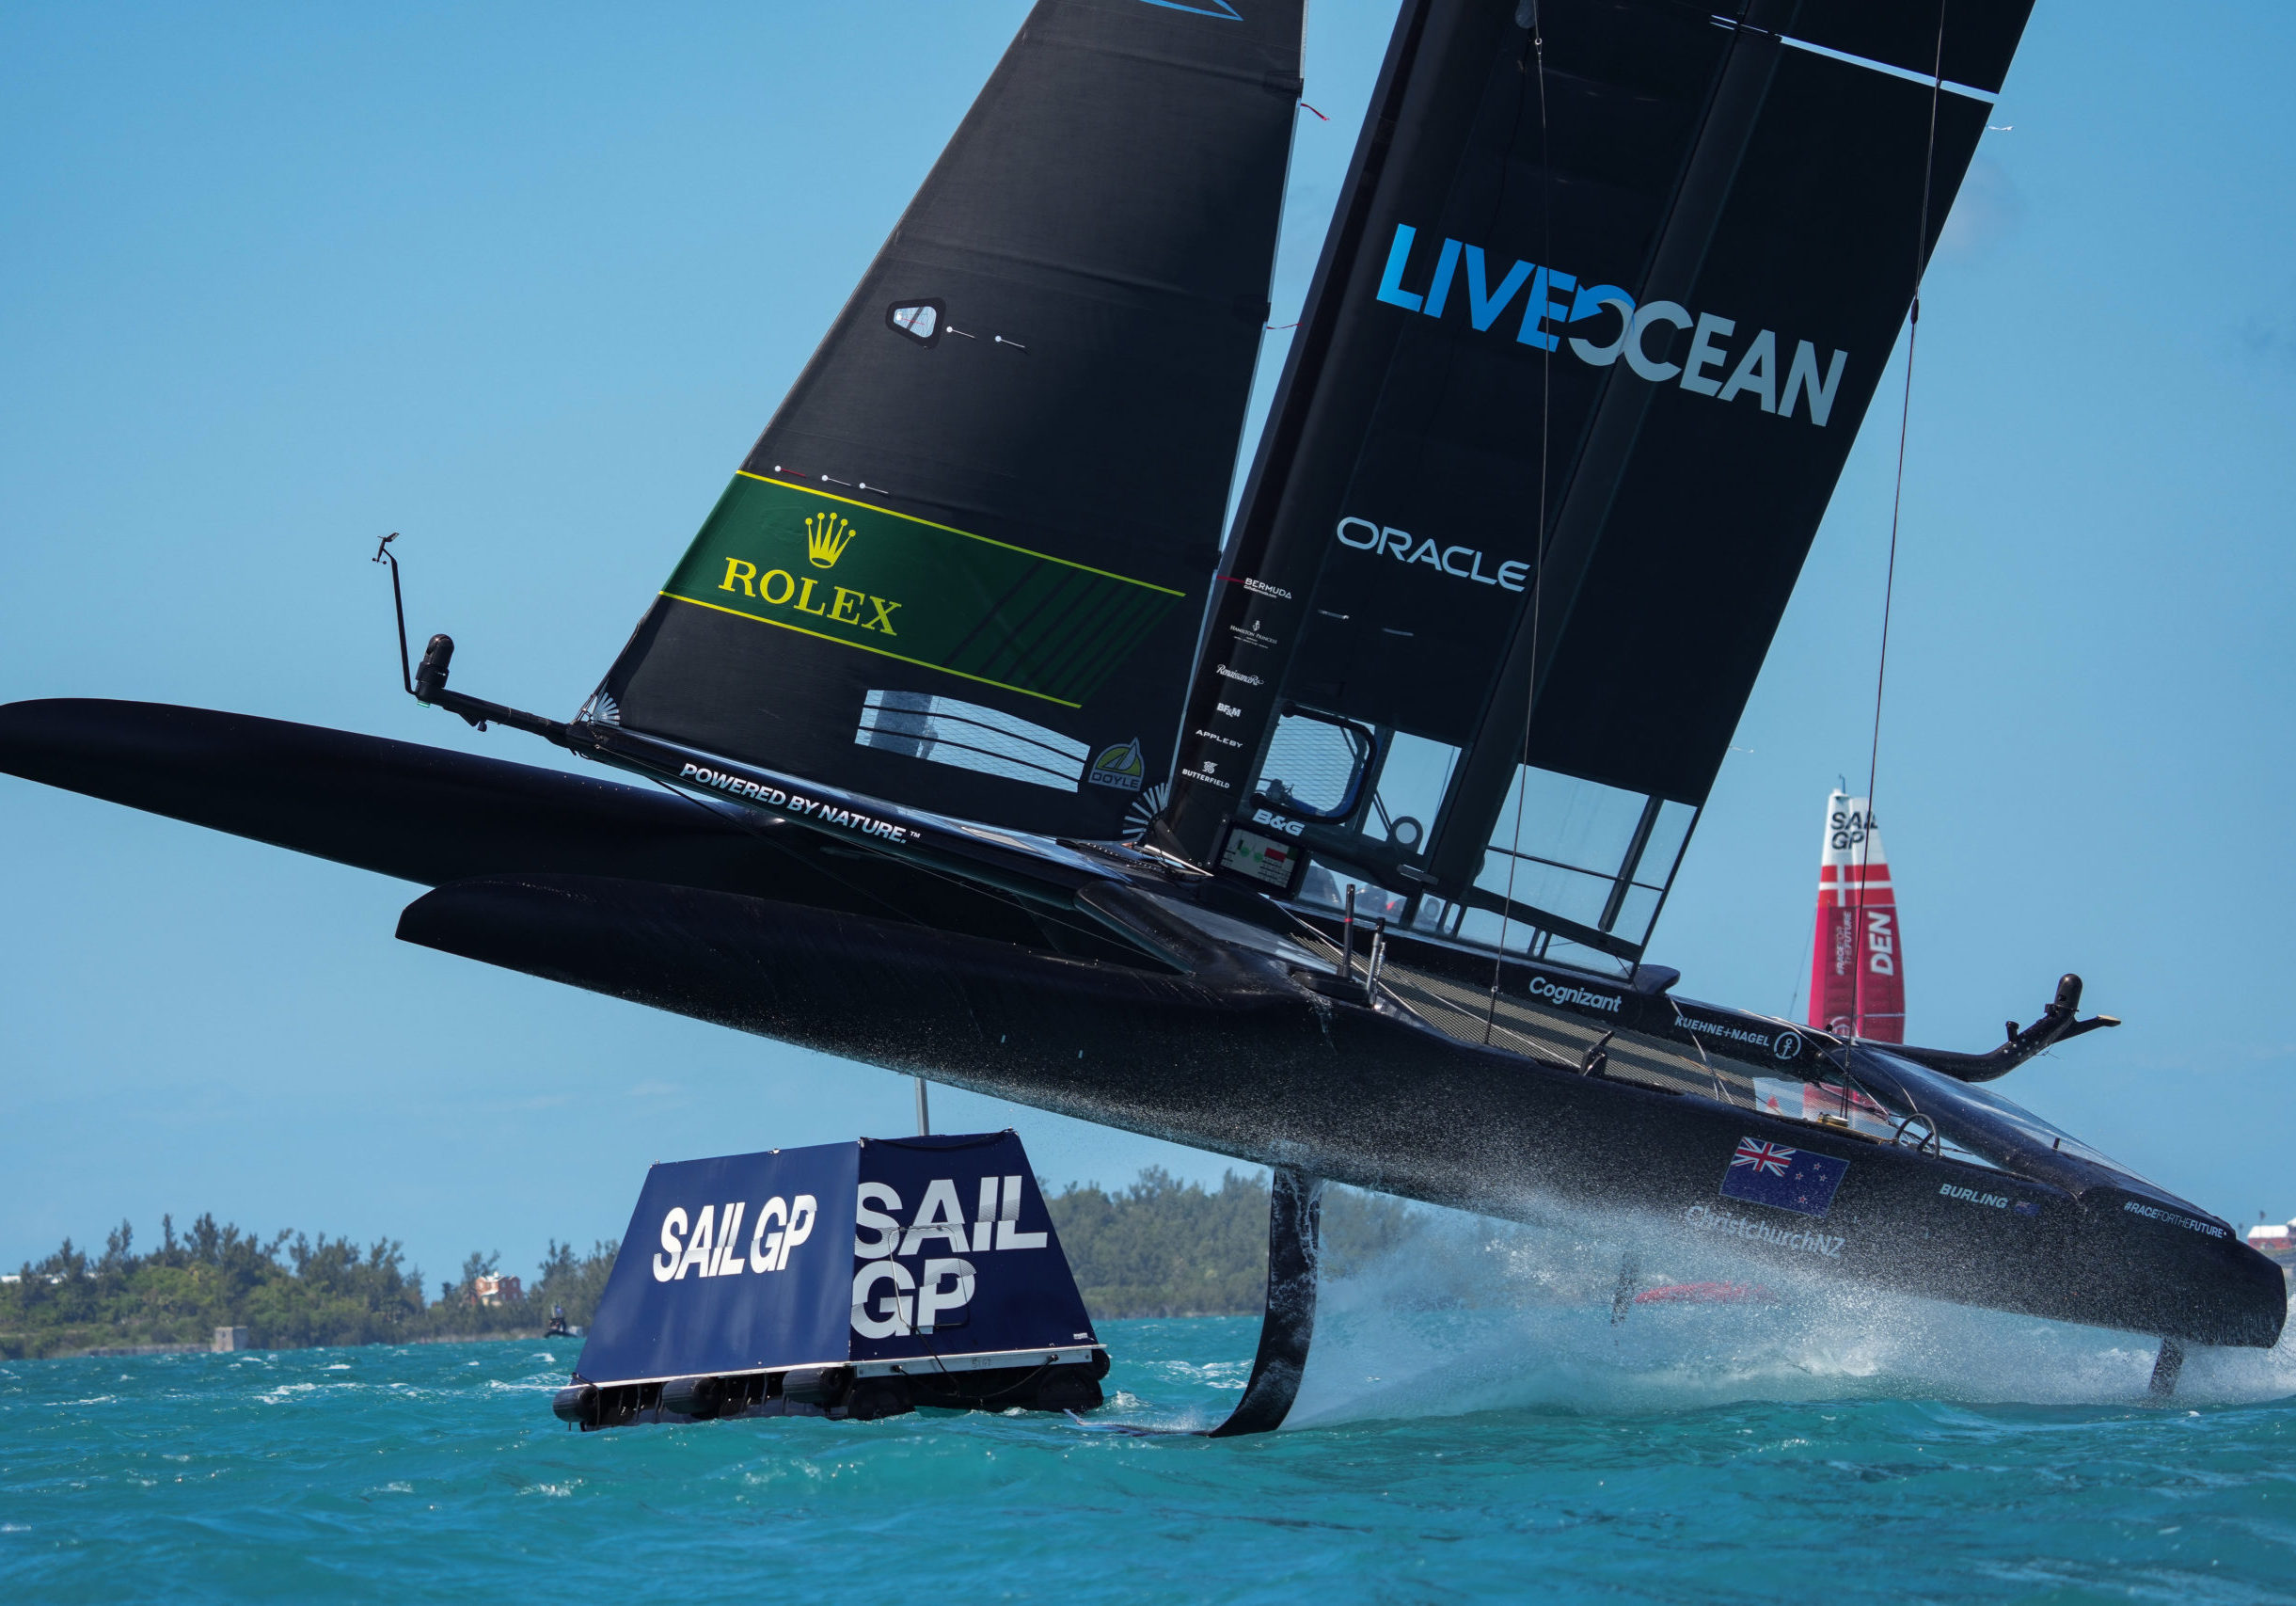 New Zealand SailGP Team helmed by Peter Burling gets high out of the water whilst competing at Bermuda SailGP presented by Hamilton Princess, Event 1 Season 2 in Hamilton, Bermuda. 23 April 2021. Photo: Bob Martin for SailGP. Handout image supplied by SailGP